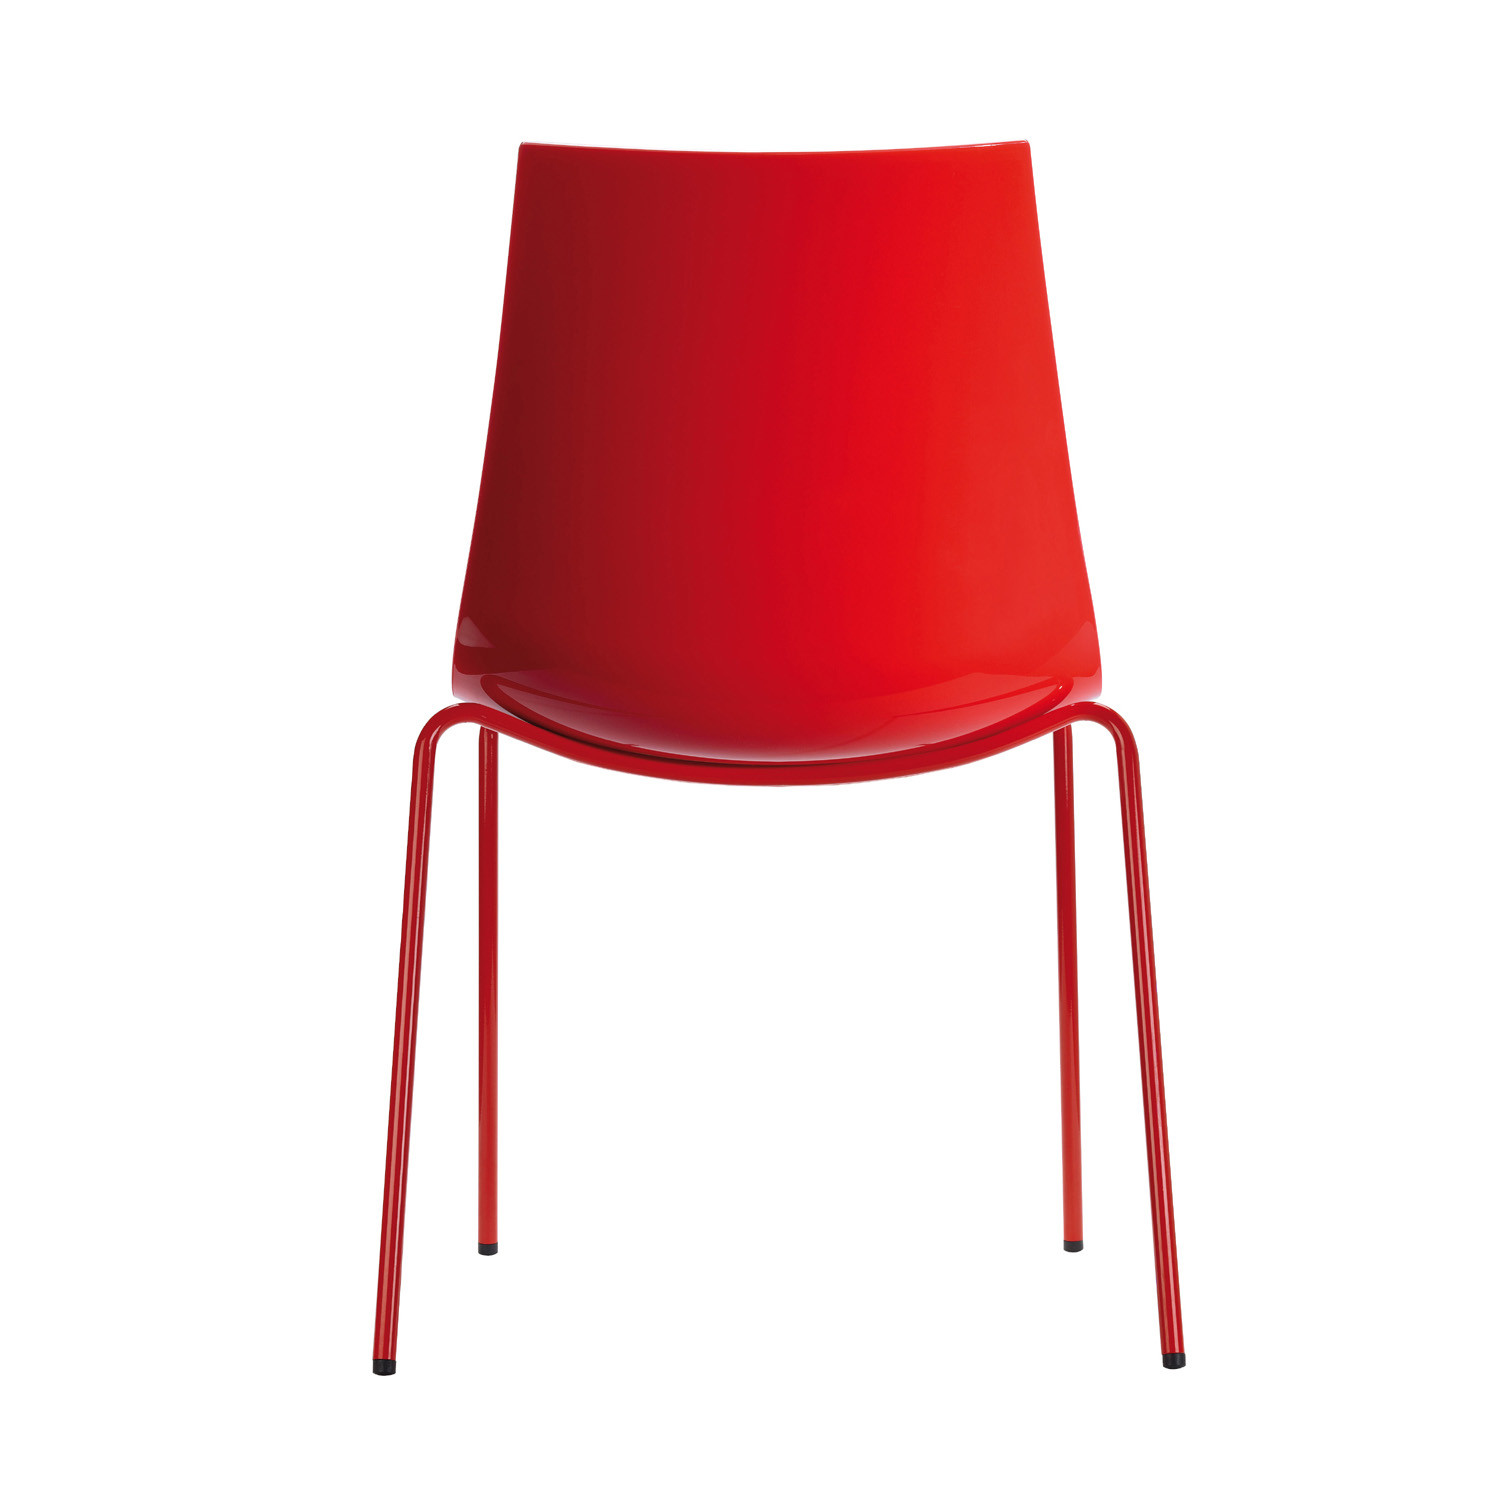 3D-Colour Cafe Chairs by Pedrali